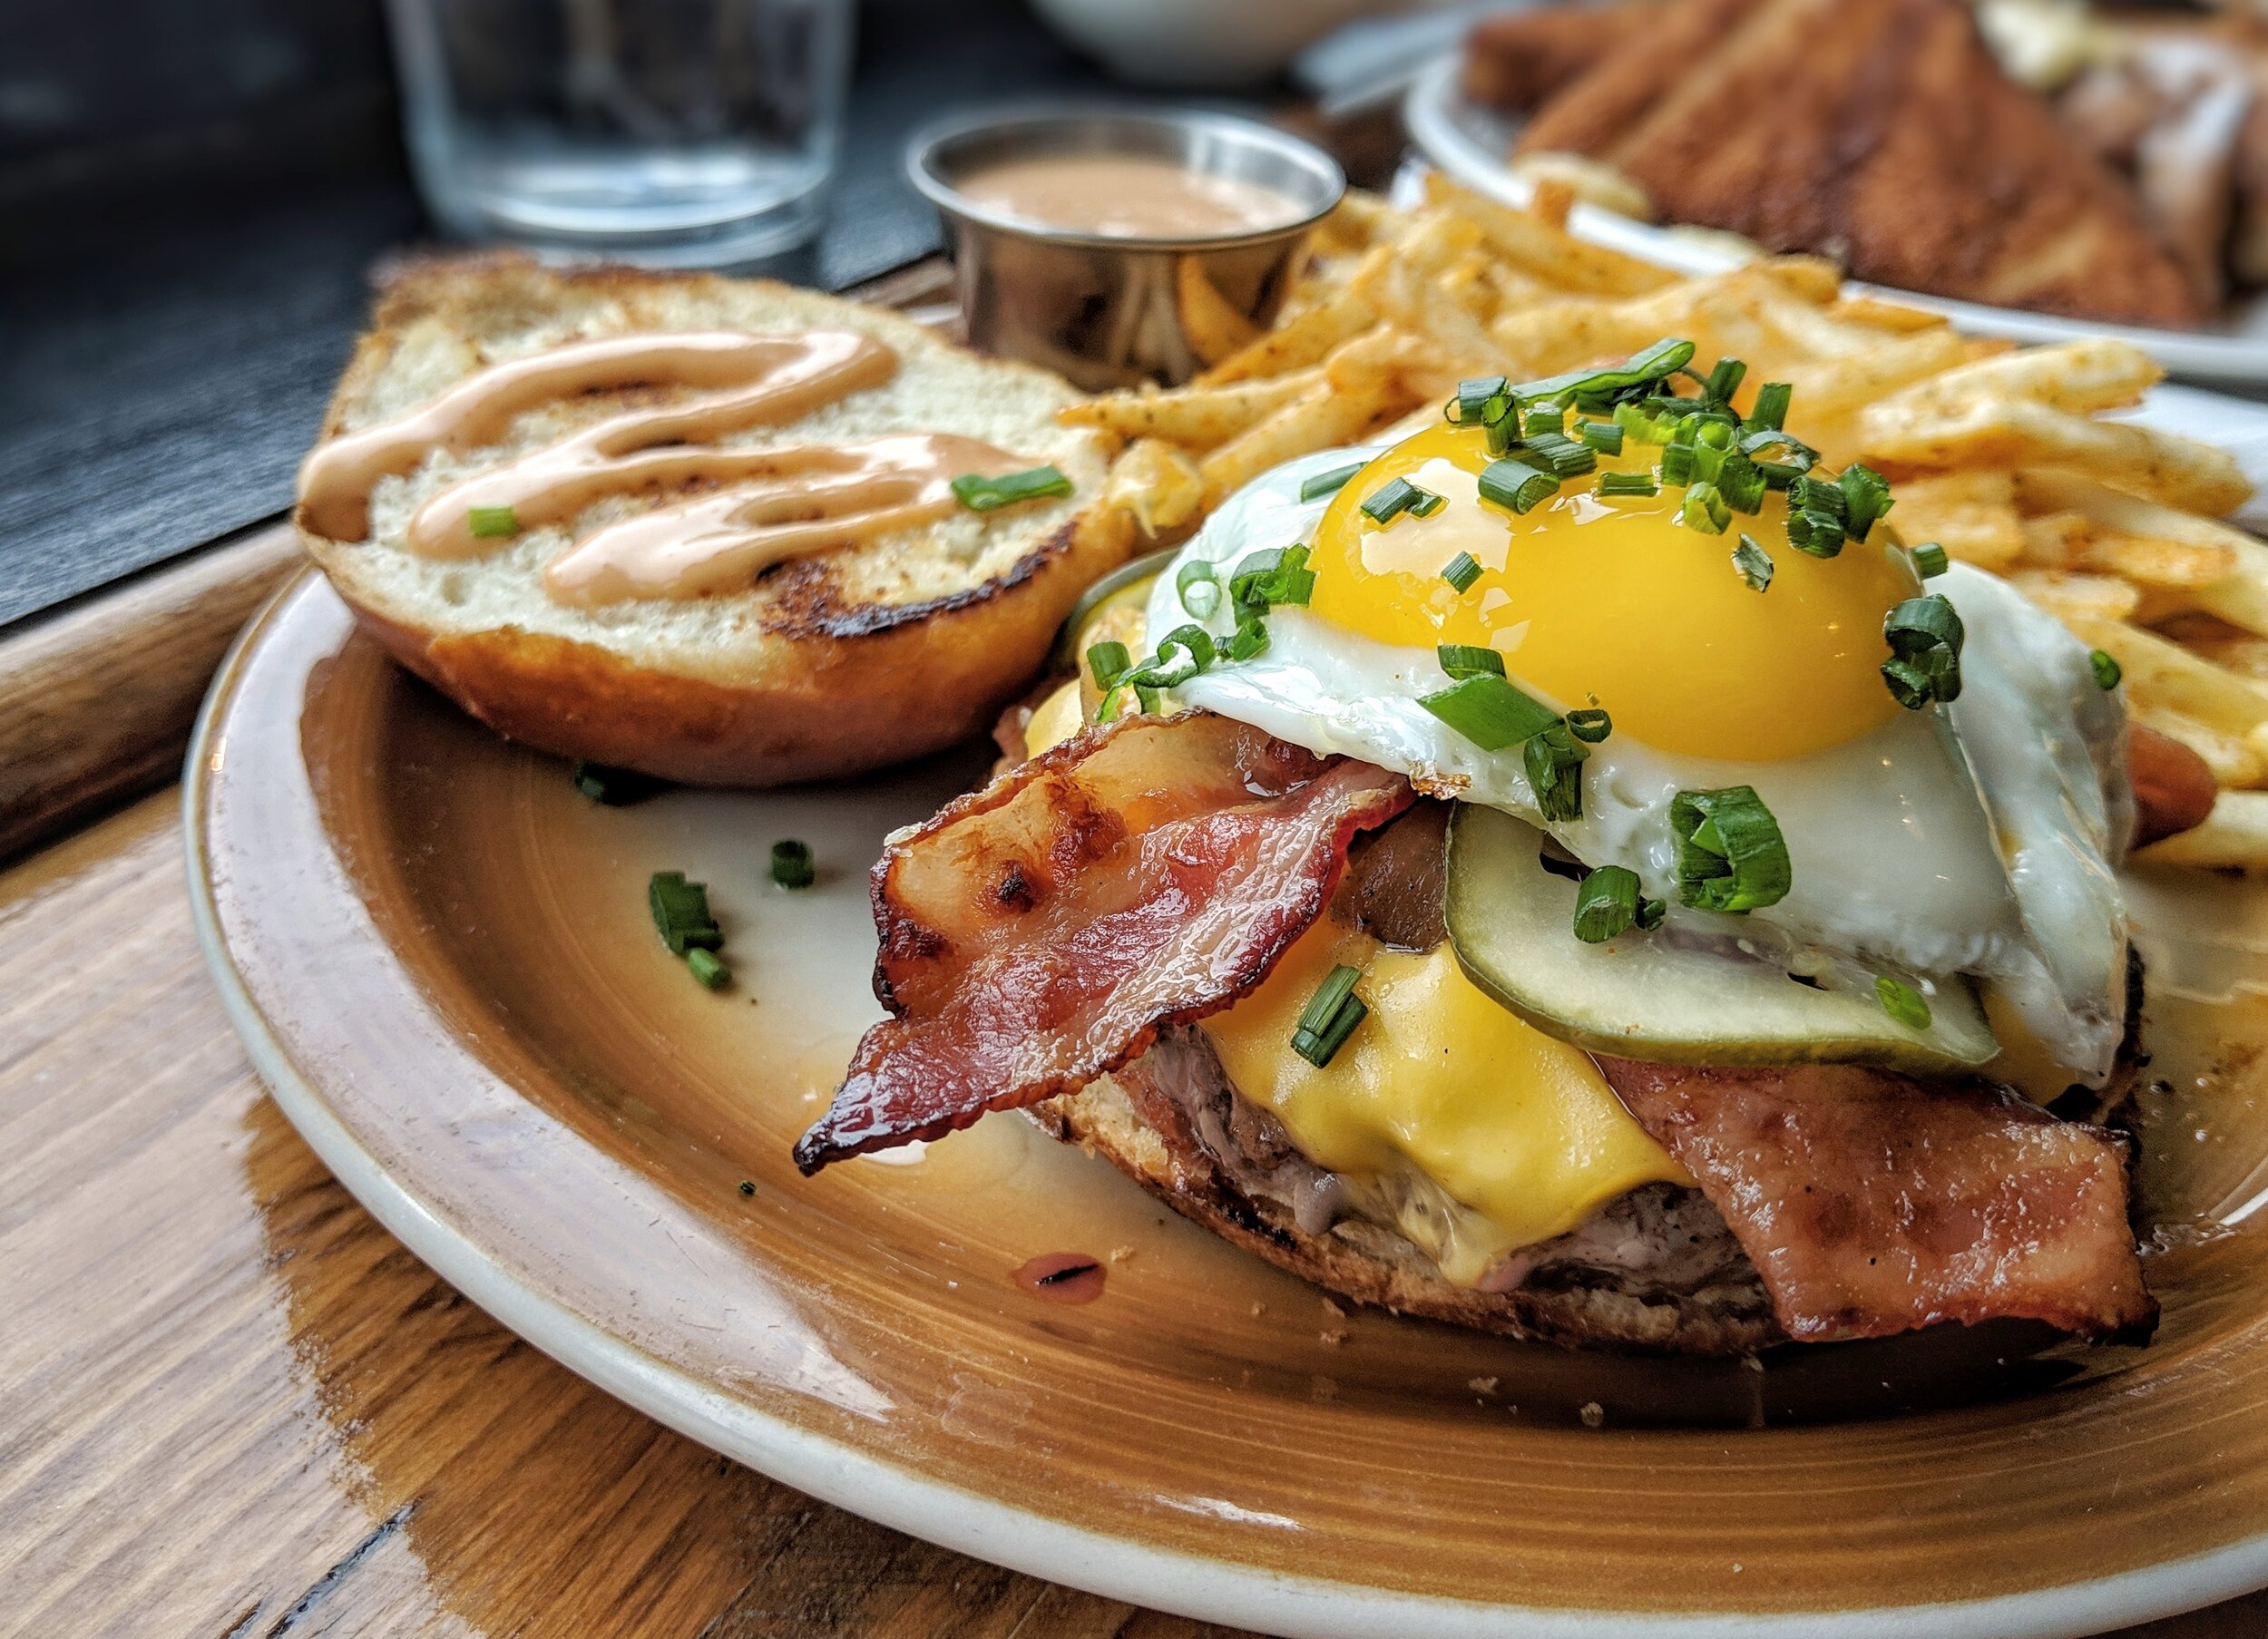 - The Breakfast Burger from The Delta is topped with American Cheese, House Pickles, Onions, a Fried Egg and D.A.F. Sauce.